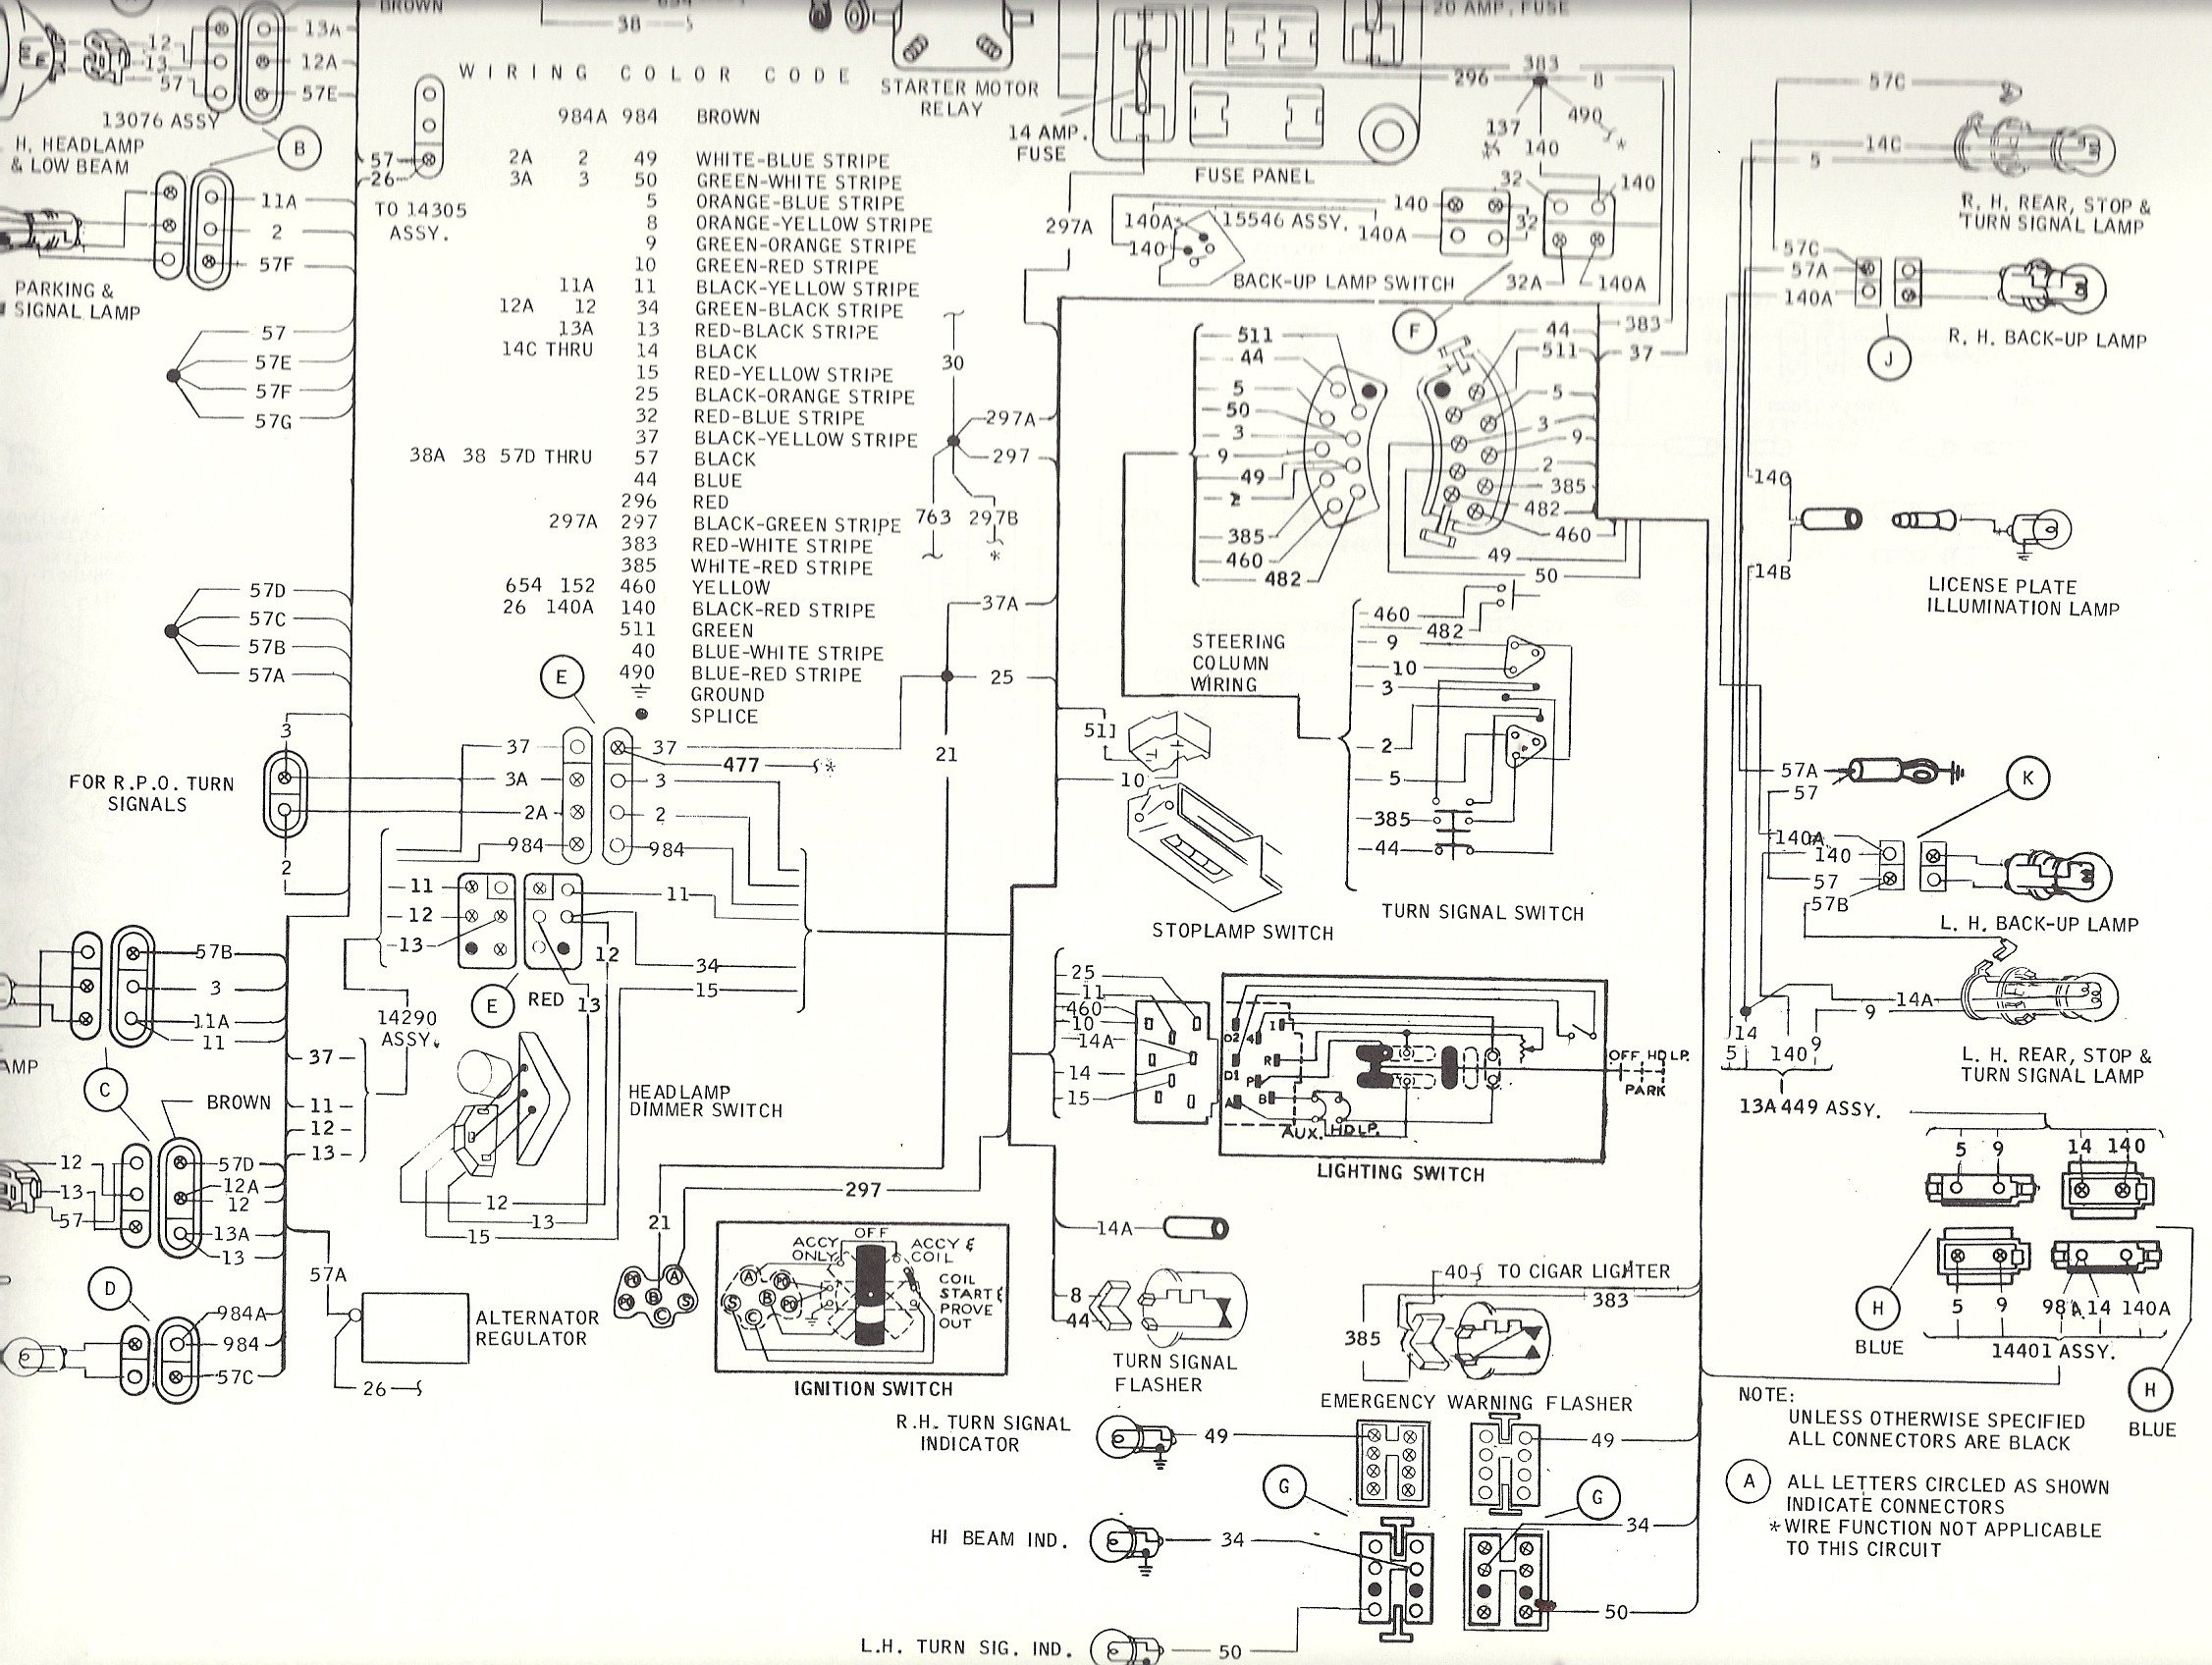 1968 Cadillac Steering Column Wiring Diagram | Wiring Liry on 1968 ford steering column sensor, 1968 steering box diagram, 1968 ford steering column repair, 1965 riviera steering column diagram, 1969 camaro power steering diagram, ford power steering diagram, 66 ford mustang steering diagram, 1968 mustang steering column diagram, 1968 ford radio schematic, 1967 mustang steering column diagram, 1968 chevelle steering column diagram, ford mustang wiring diagram, ford steering parts diagram, 68 chevelle steering column diagram, 1970 nova steering column diagram, 1973 f100 steering diagram, 67 c10 column diagram, 1965 econoline shift column diagram, 1967 mustang power steering diagram,